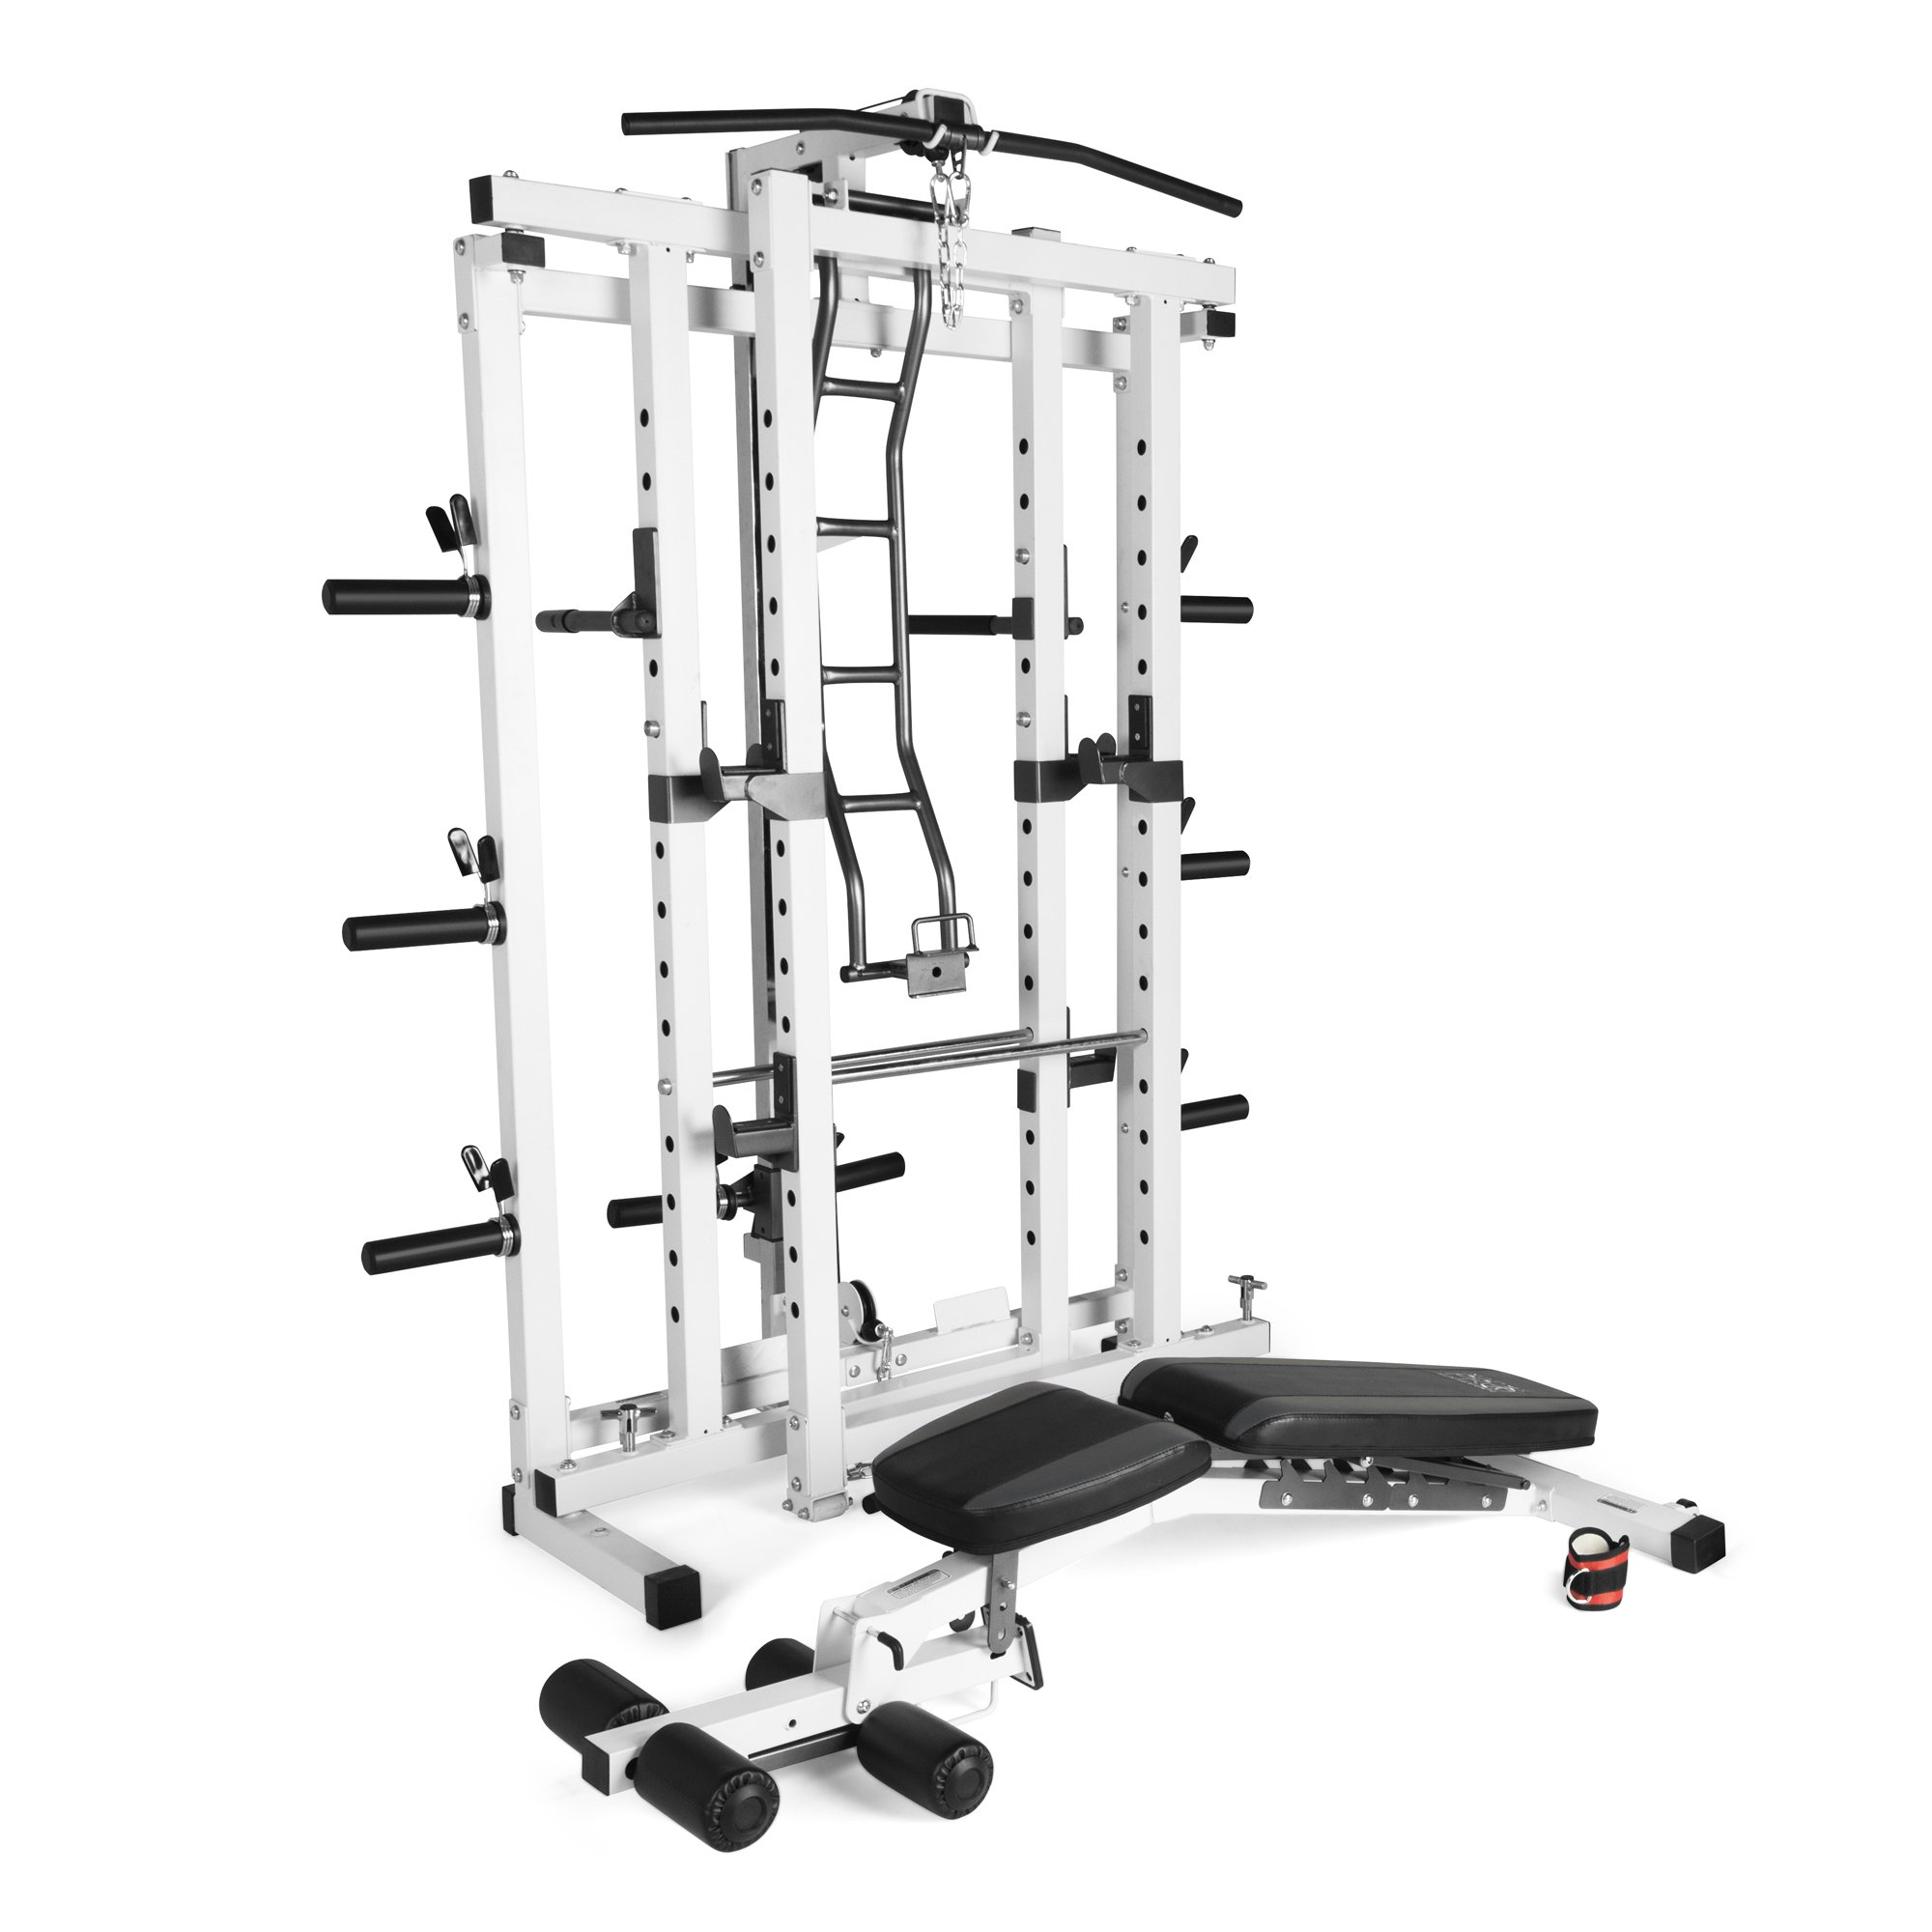 Marcy Pro Deluxe Folding Total Body Home Gym Cage Power Rack System with Bench by Marcy Fitness